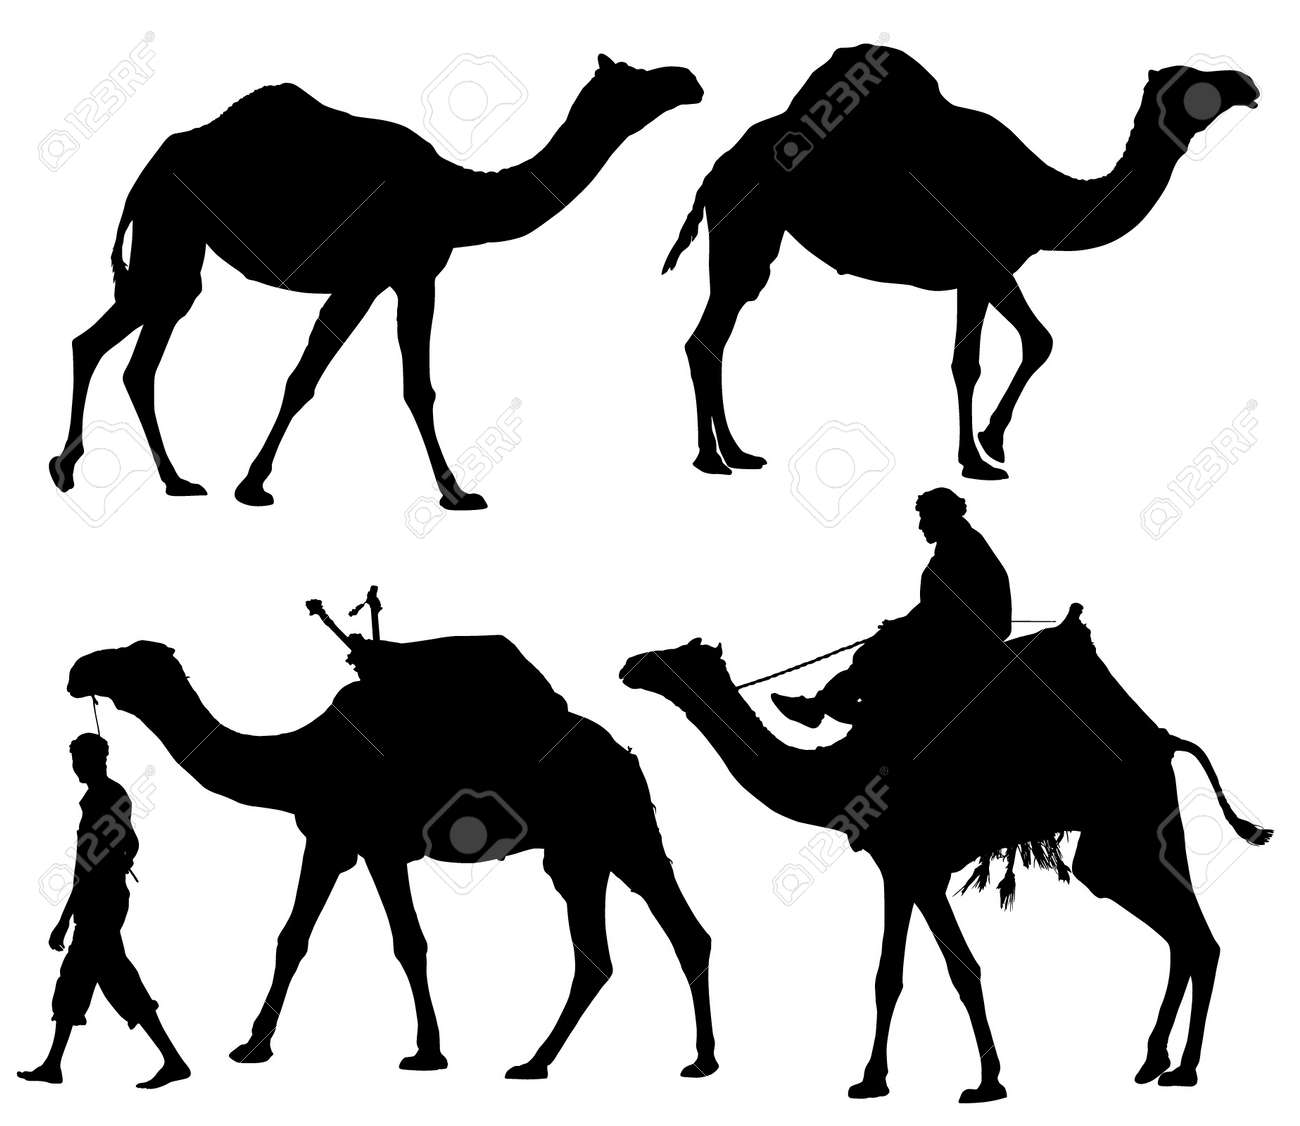 Camel Silhouette on white background Stock Vector - 16221346